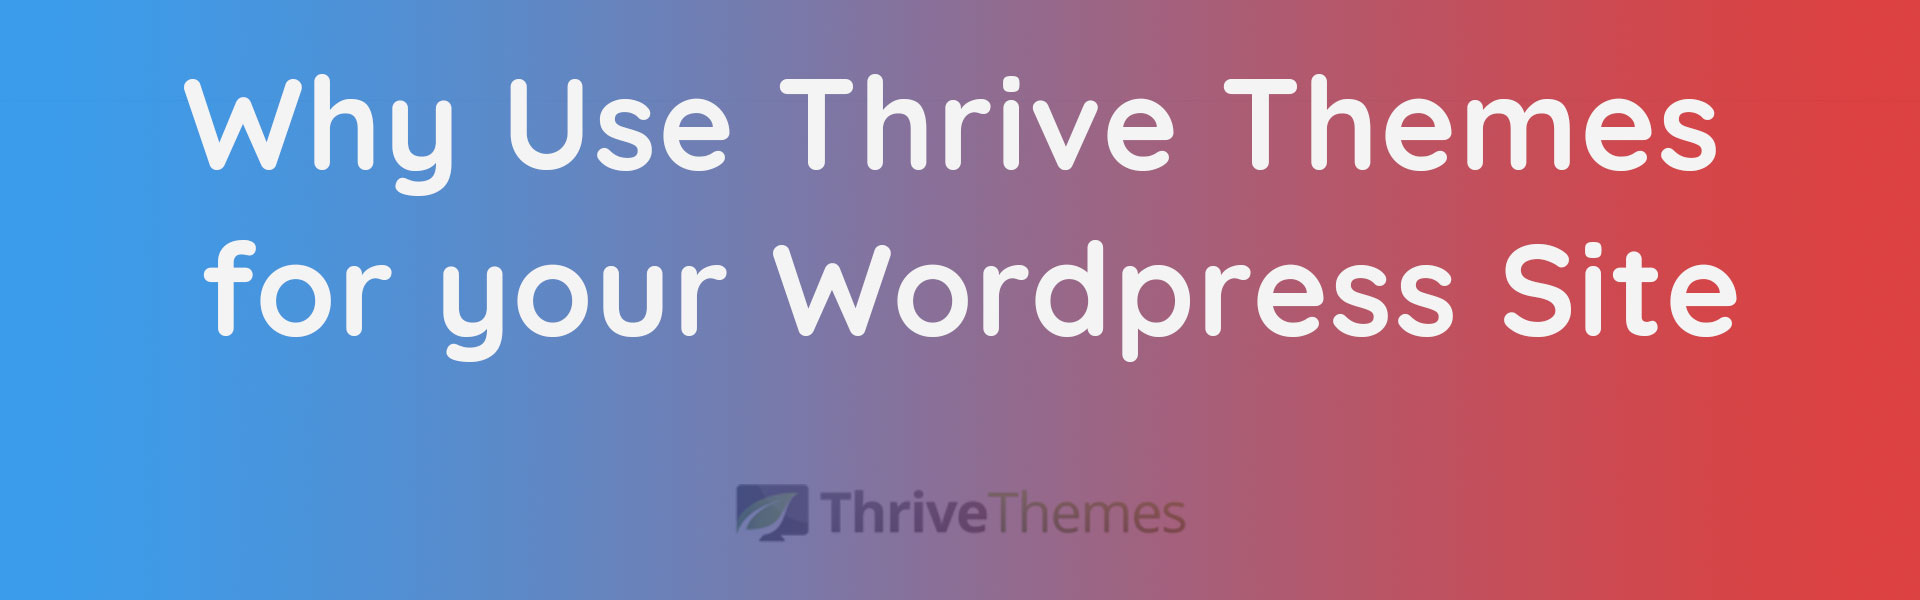 Buy WordPress Themes  Thrive Themes Deals 2020